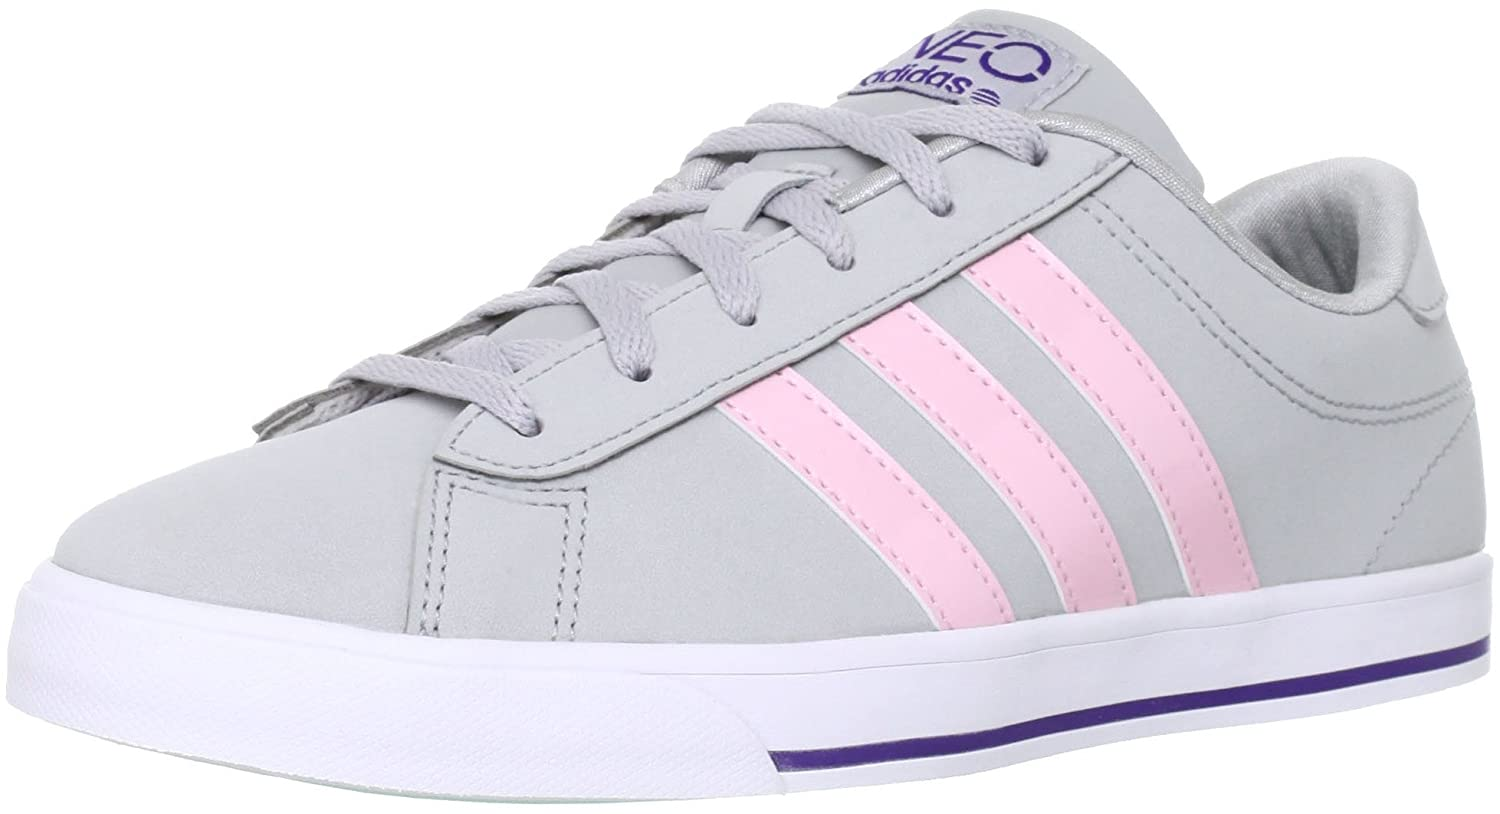 new appearance preview of 100% authentic adidas neo grau pink damen